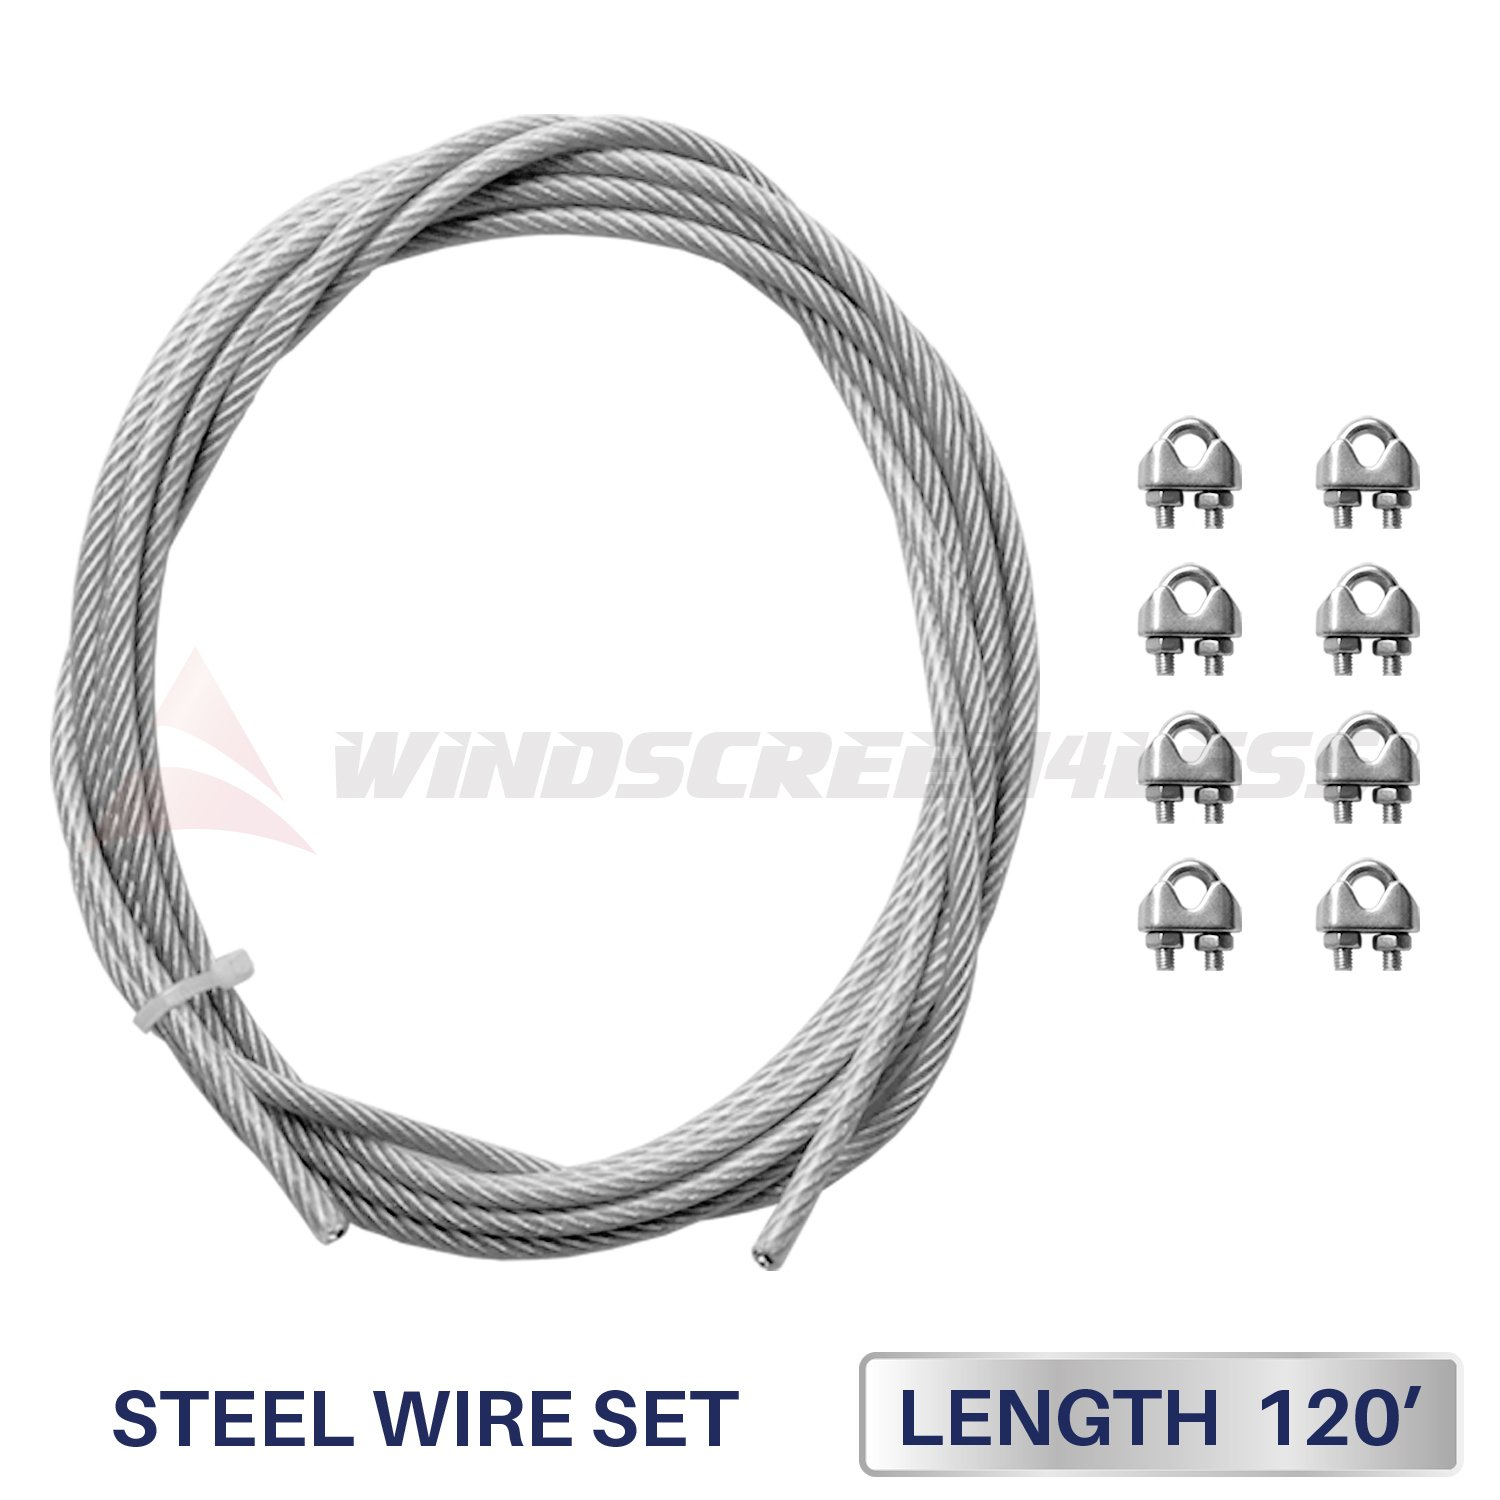 Windscreen4less Shade Sail Wire Rope and 8 Pcs Clips, Vinyl Coated Wire Cable Galvanized Metal Clamp, 3/16-Inch x 120 Feet by Windscreen4less (Image #1)